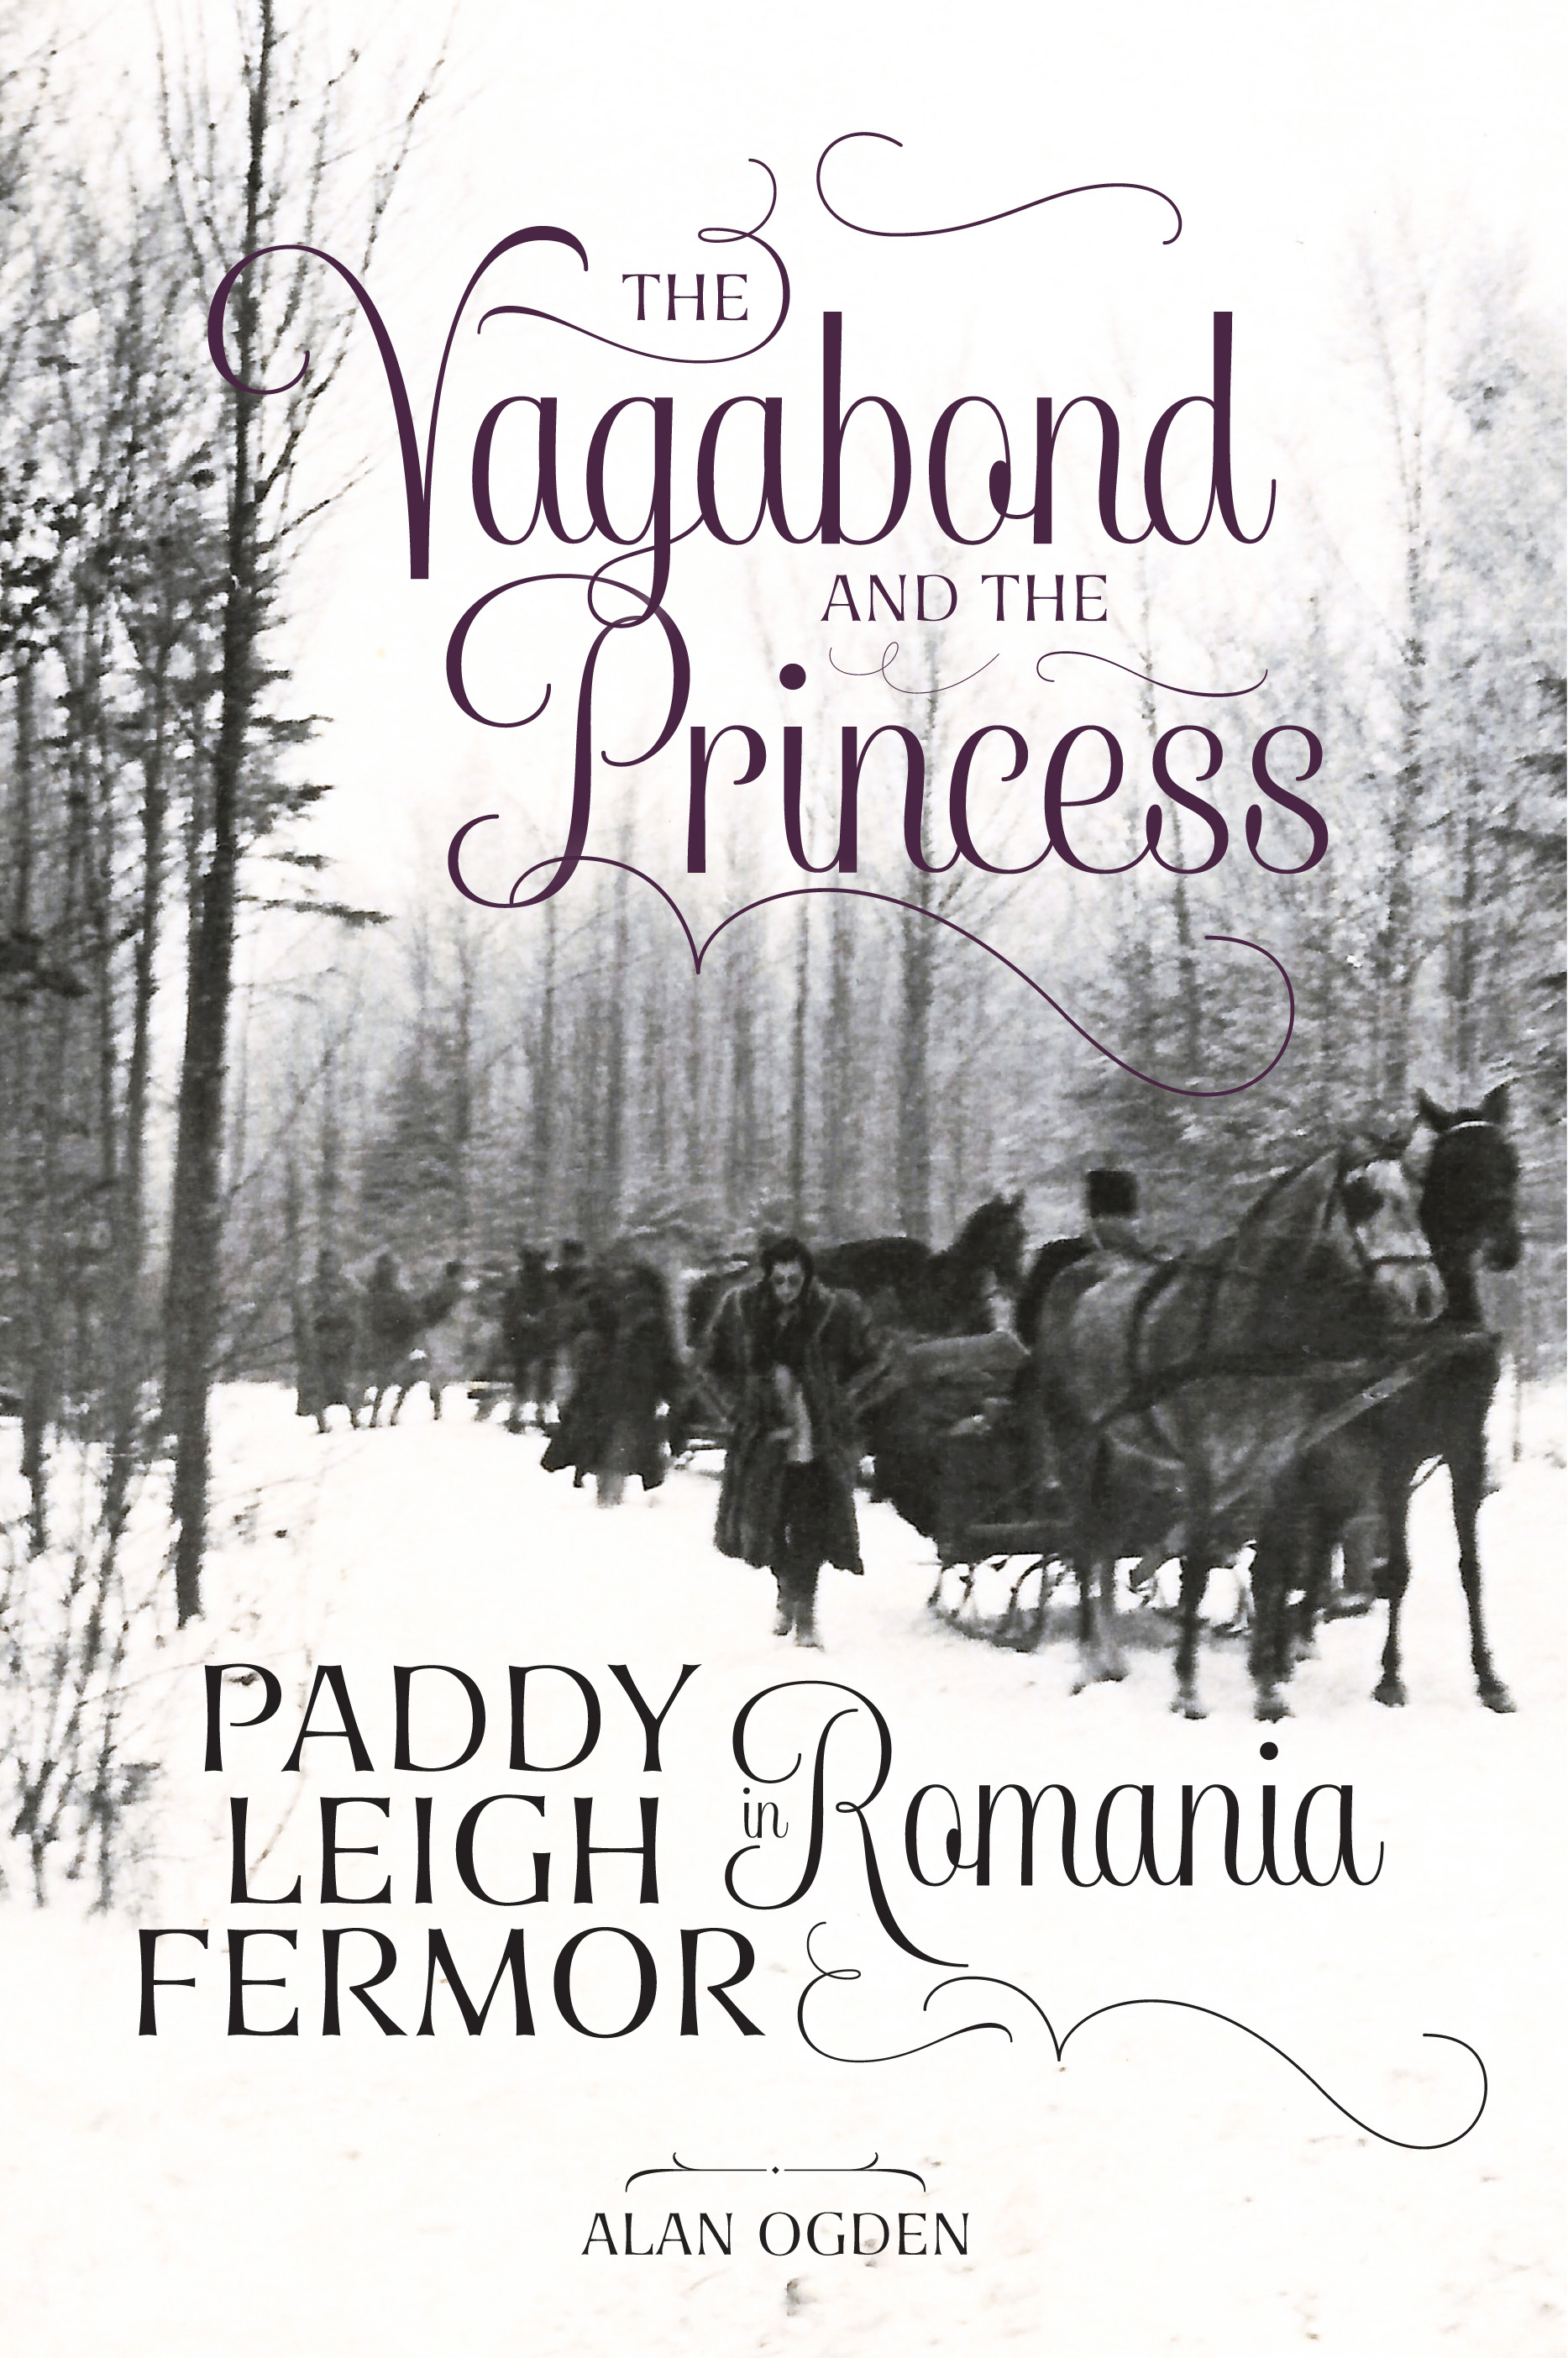 The Vagabond & The Princess